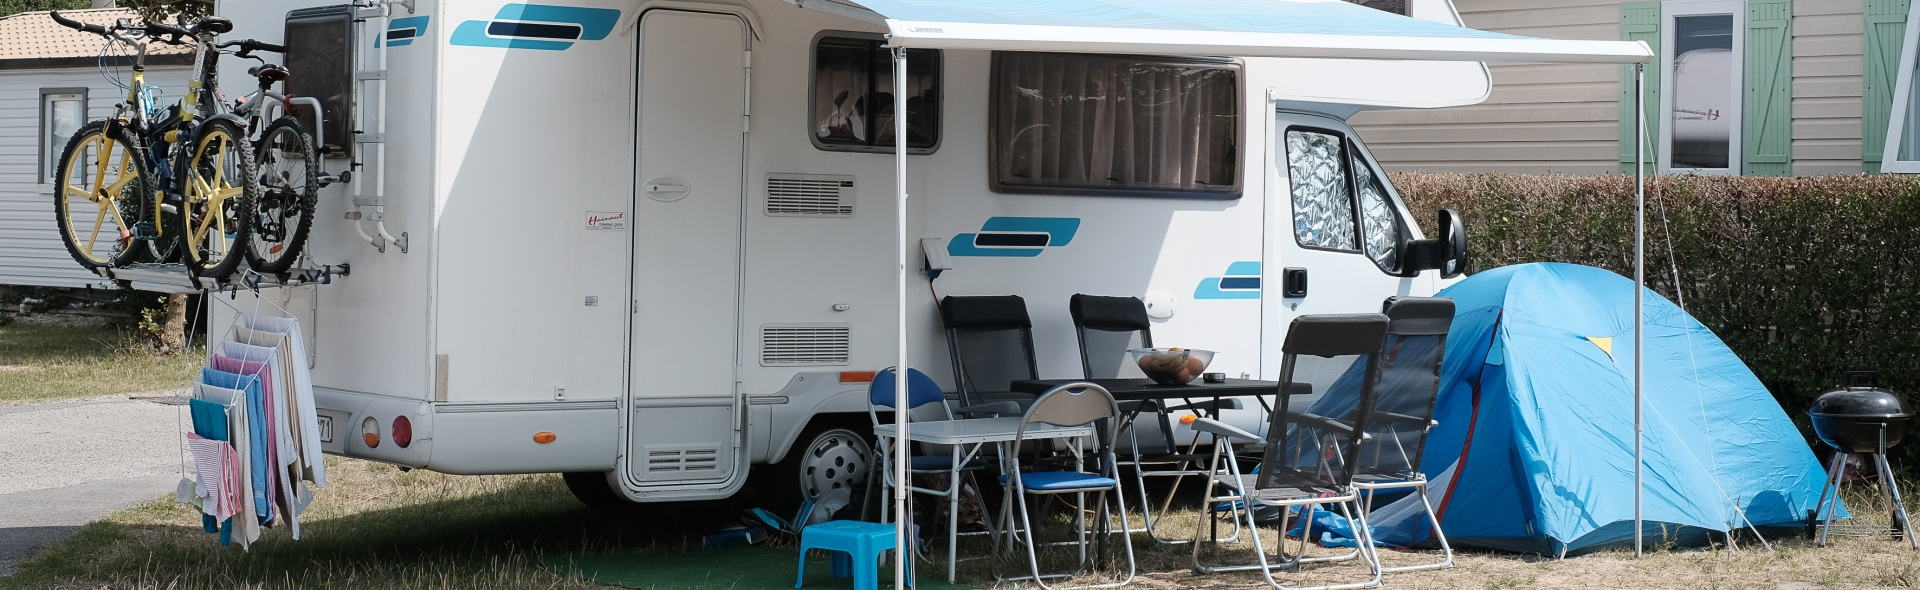 location emplacement camping car gravelines